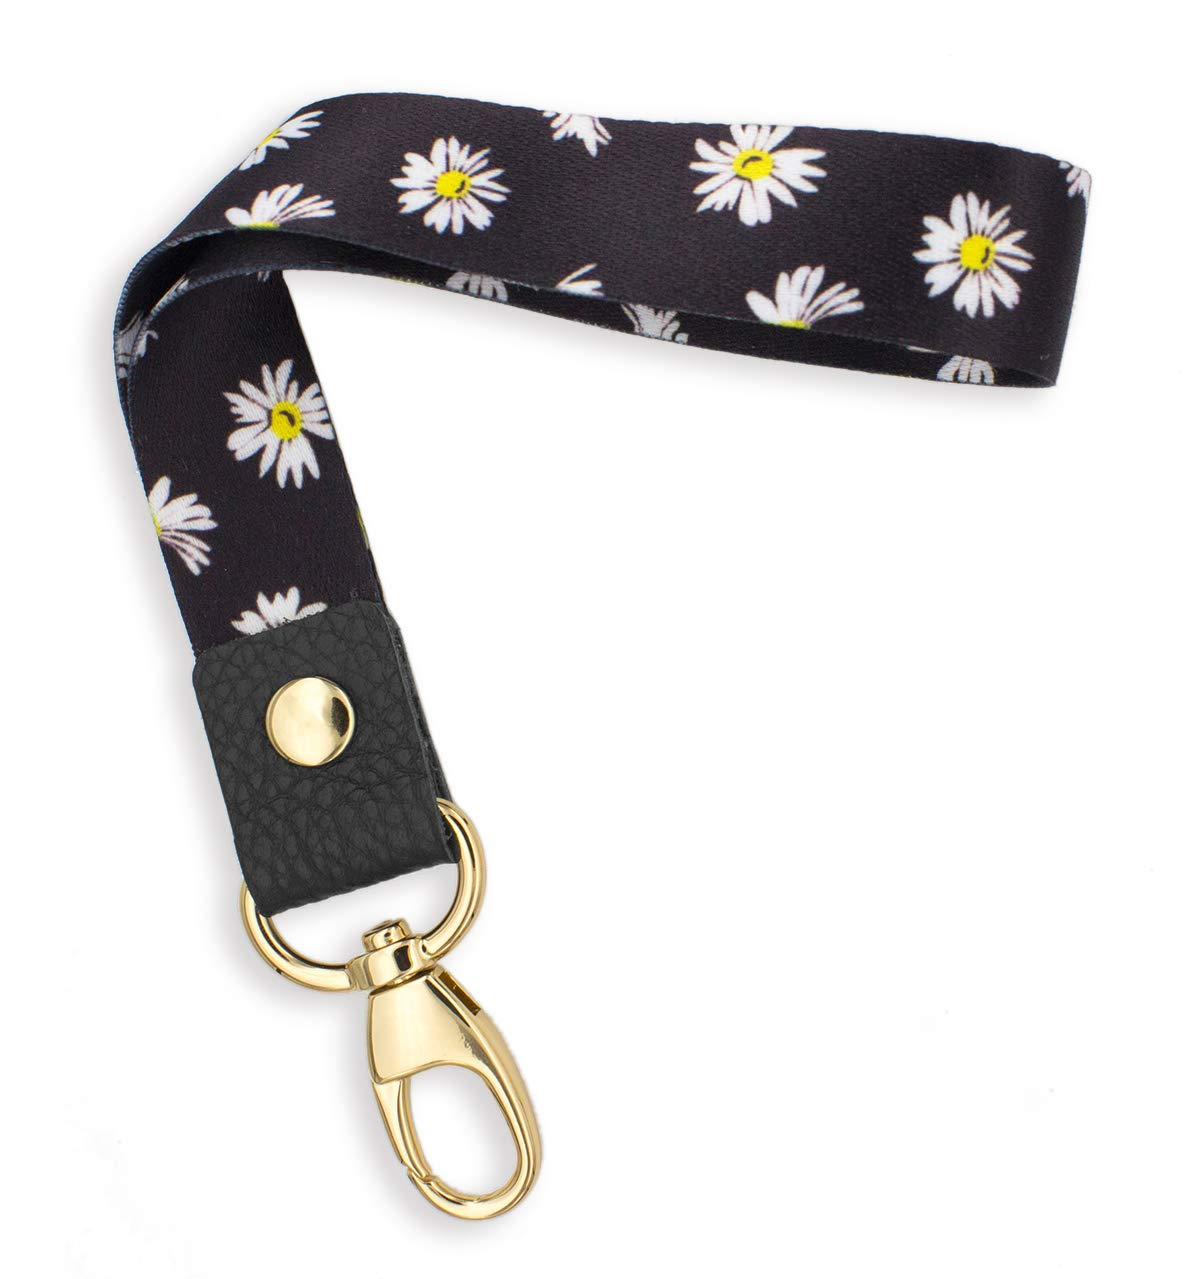 SENLLY Daisies Hand Wrist Lanyard Premium Quality Wristlet Strap with Metal Clasp and Genuine Leather, for Key Chain, Camera, Cell Mobile Phone, Charms, Lightweight Items etc